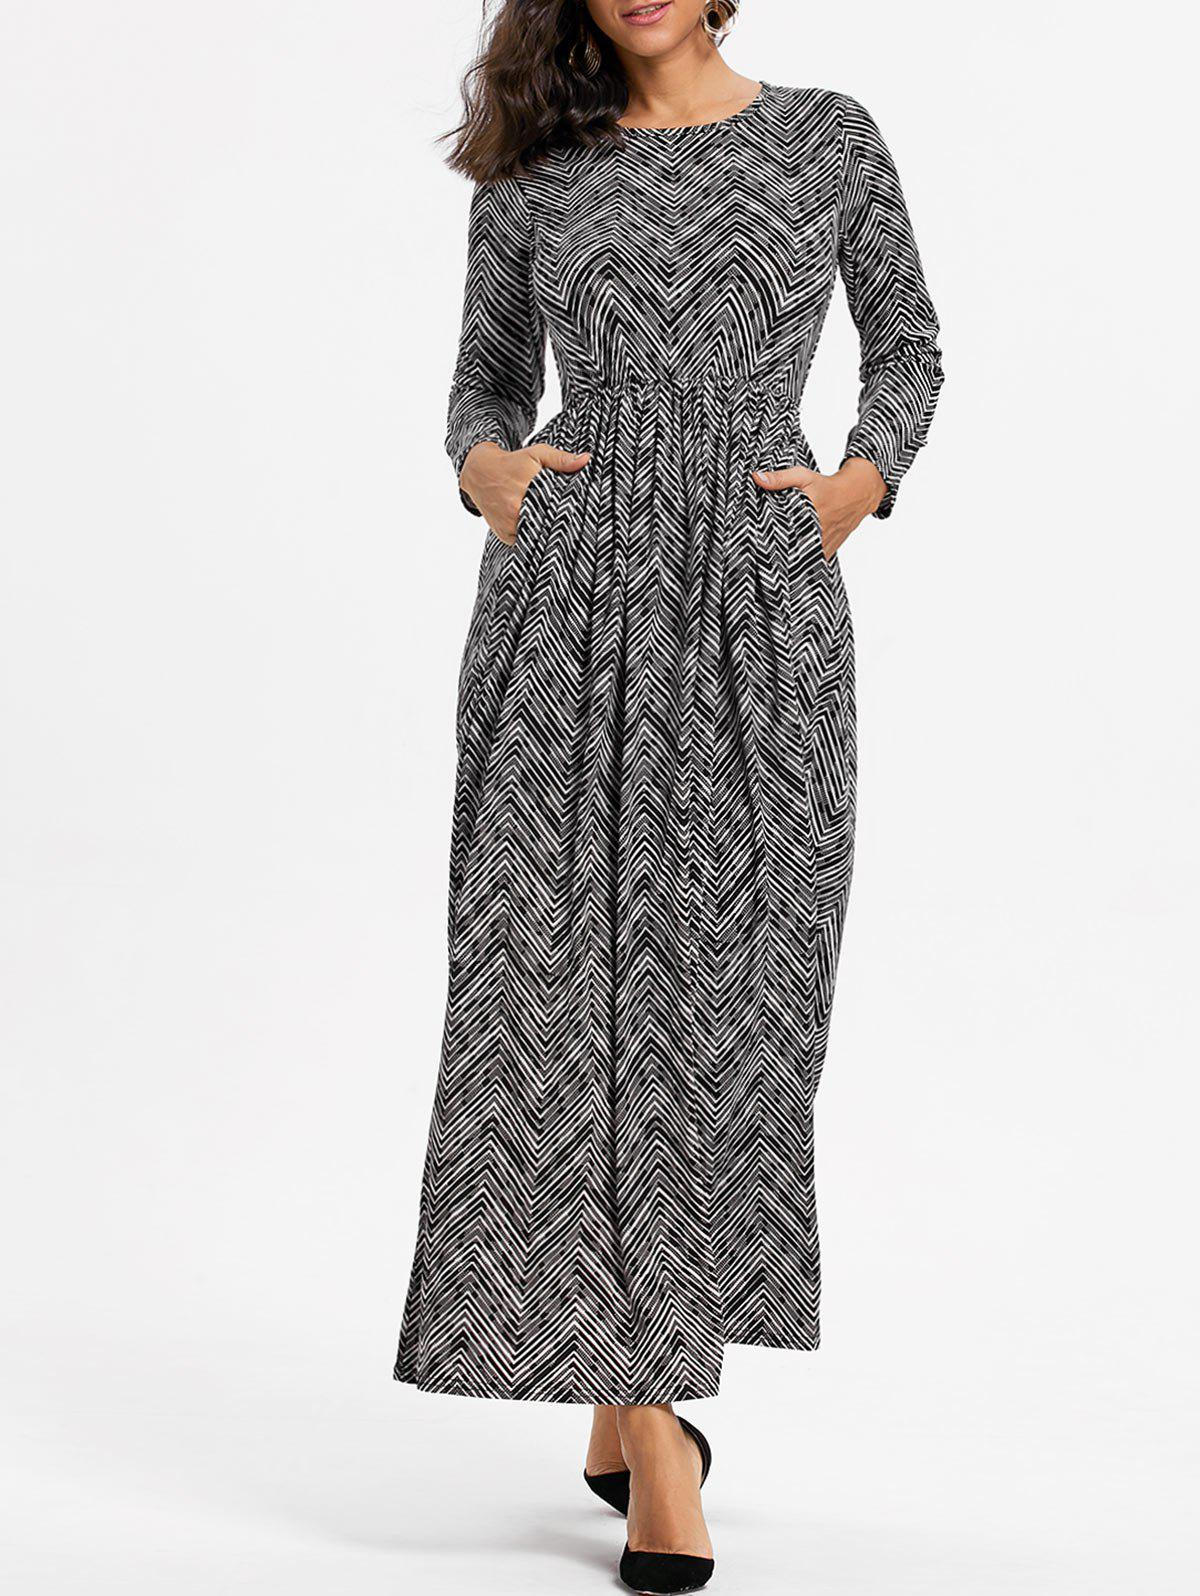 Zig Zag High Waist Maxi Dress pontoon21 zanu zag вокер купить